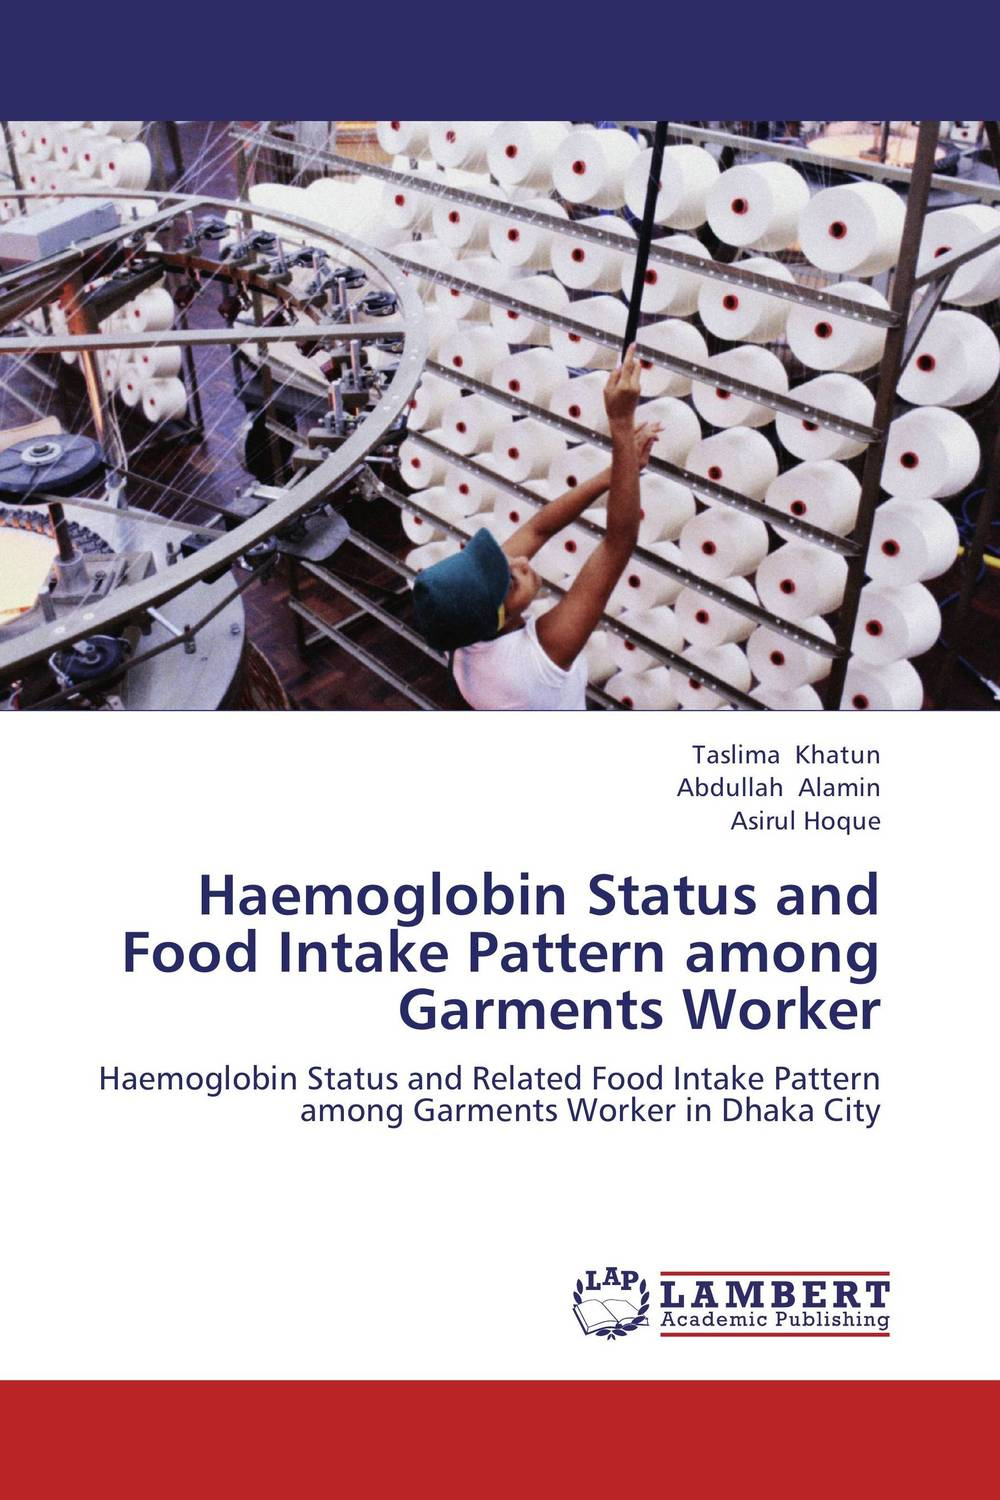 Haemoglobin Status and Food Intake Pattern among Garments Worker